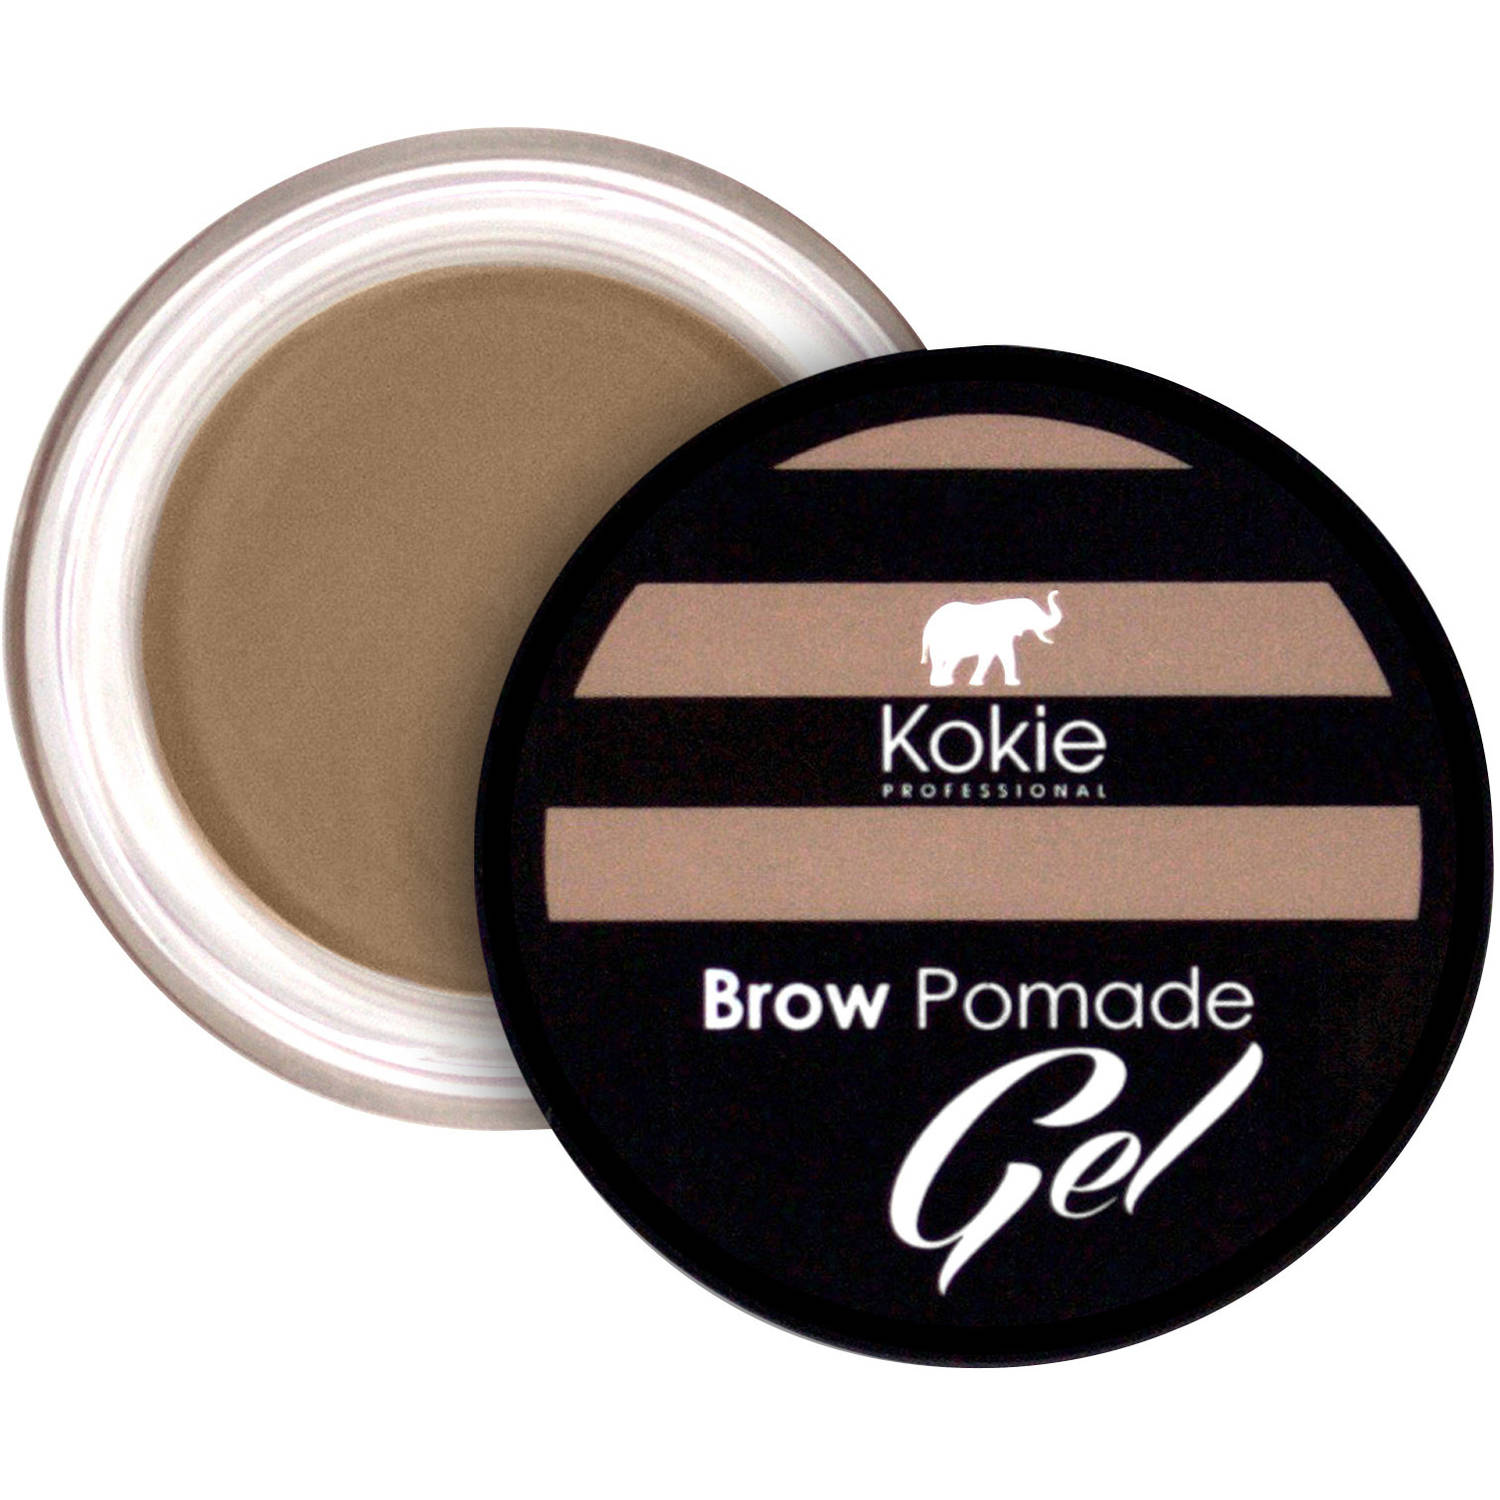 Kokie Professional Brow Pomade Gel, Blonde, 0.13 oz